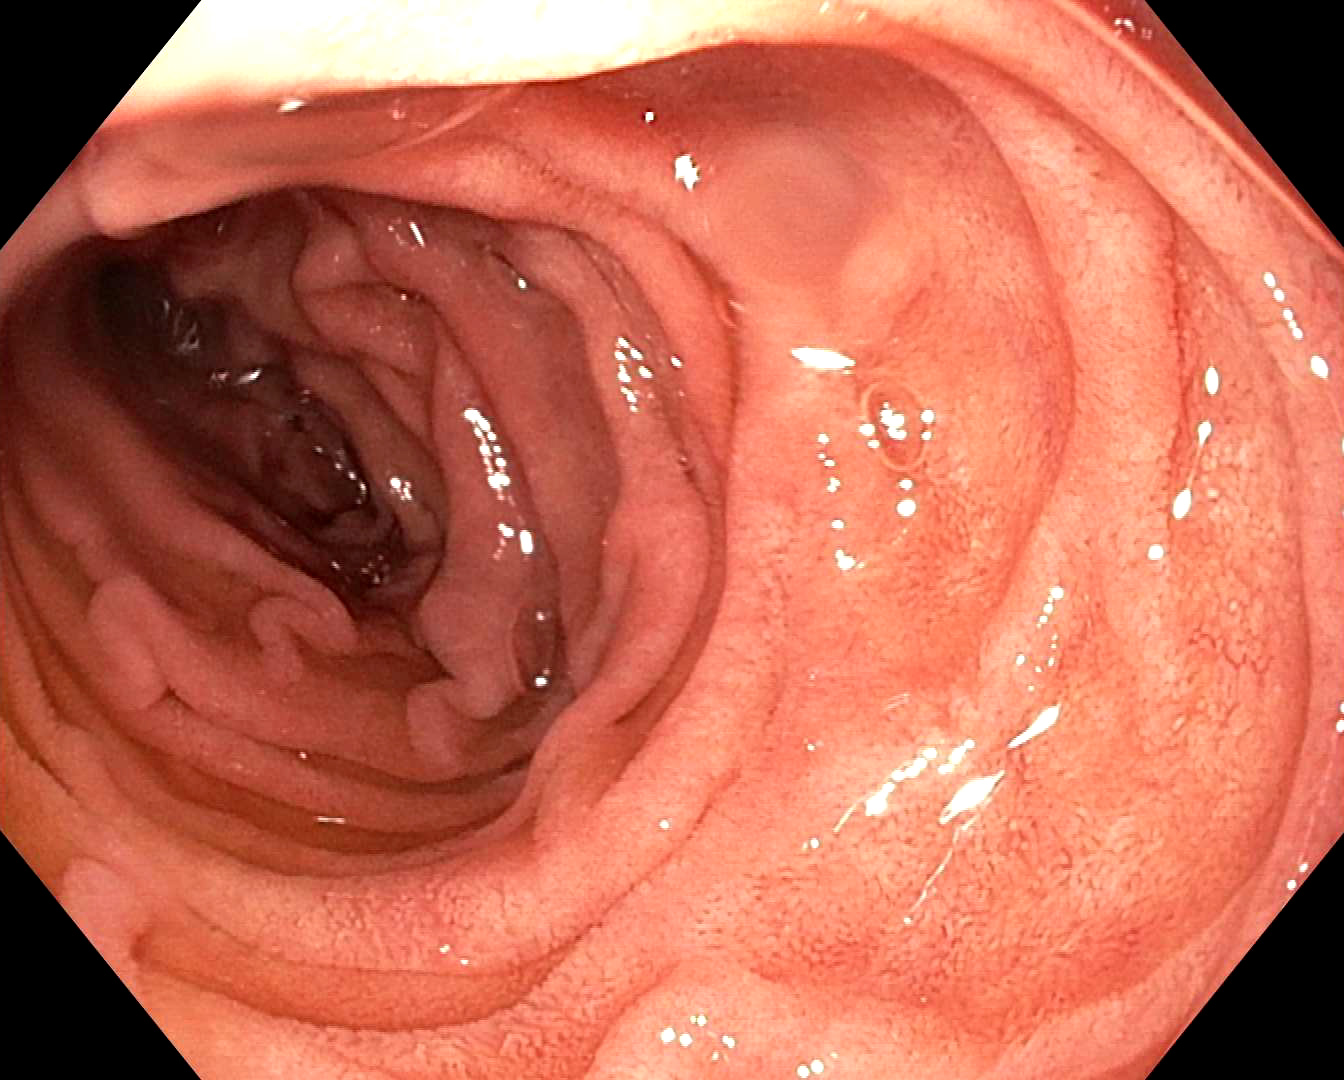 Endoscopic view of duodenum